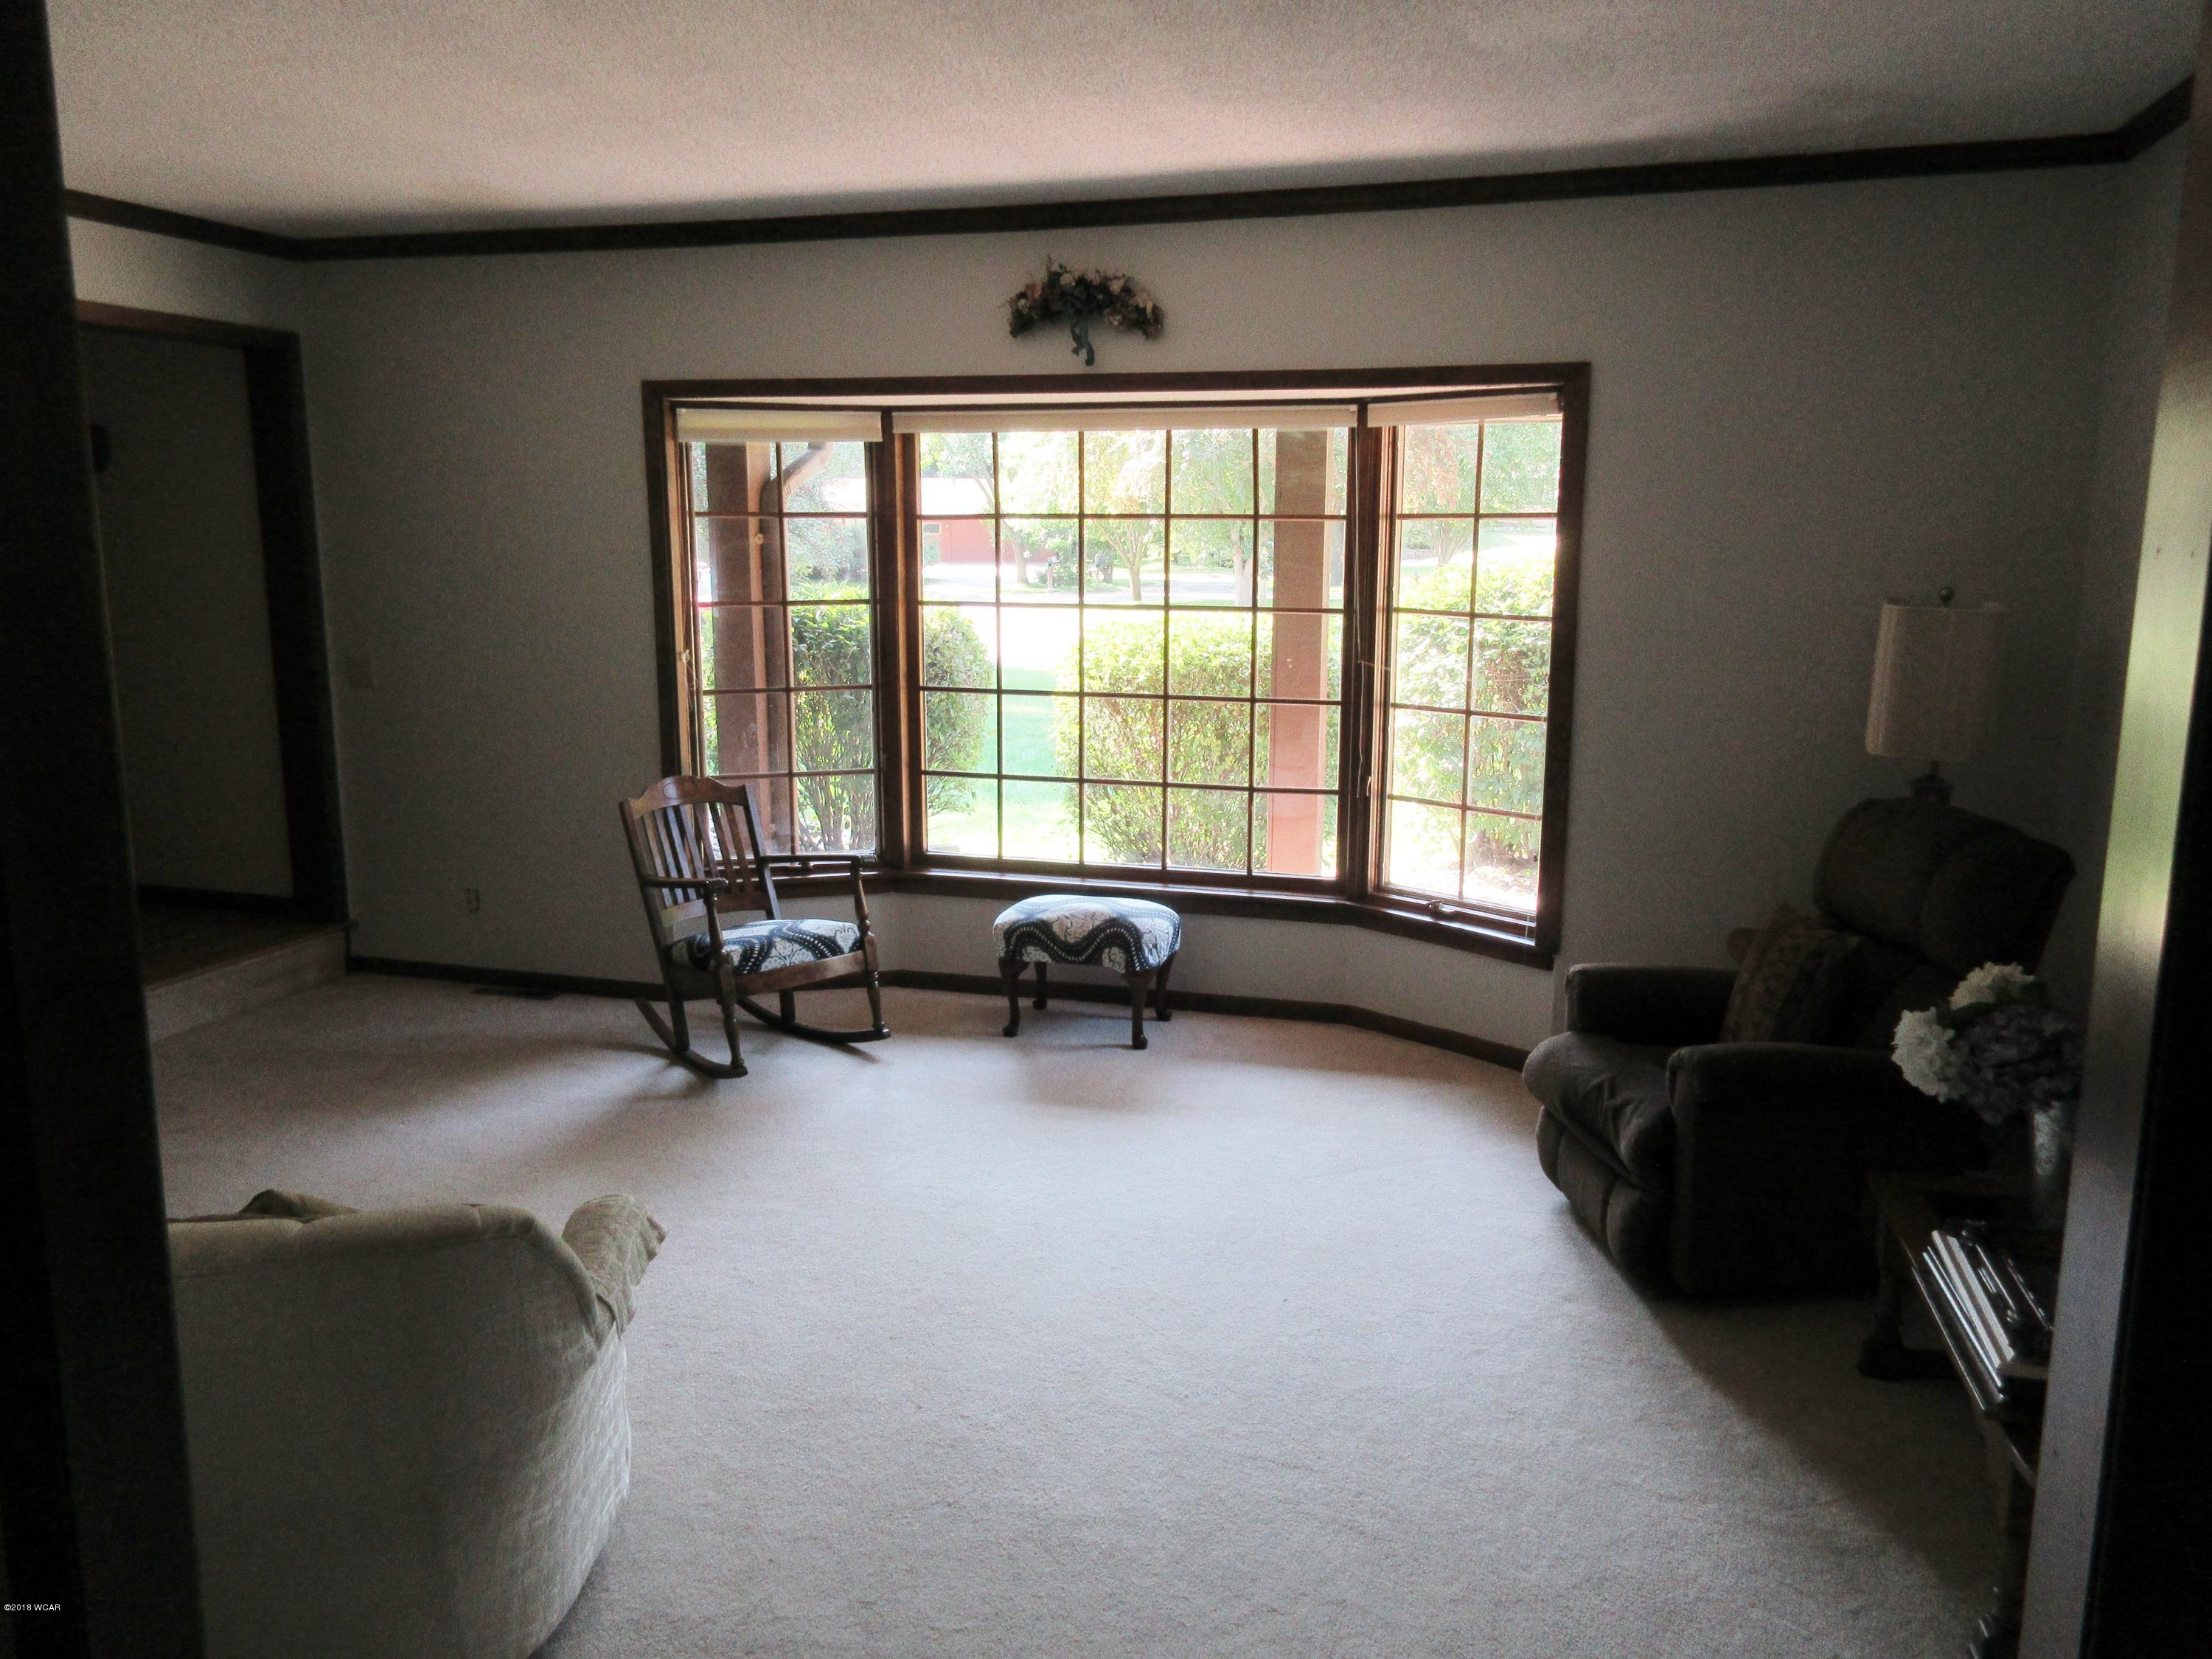 1406 Westwood Court,Willmar,3 Bedrooms Bedrooms,4 BathroomsBathrooms,Single Family,Westwood Court,6032230